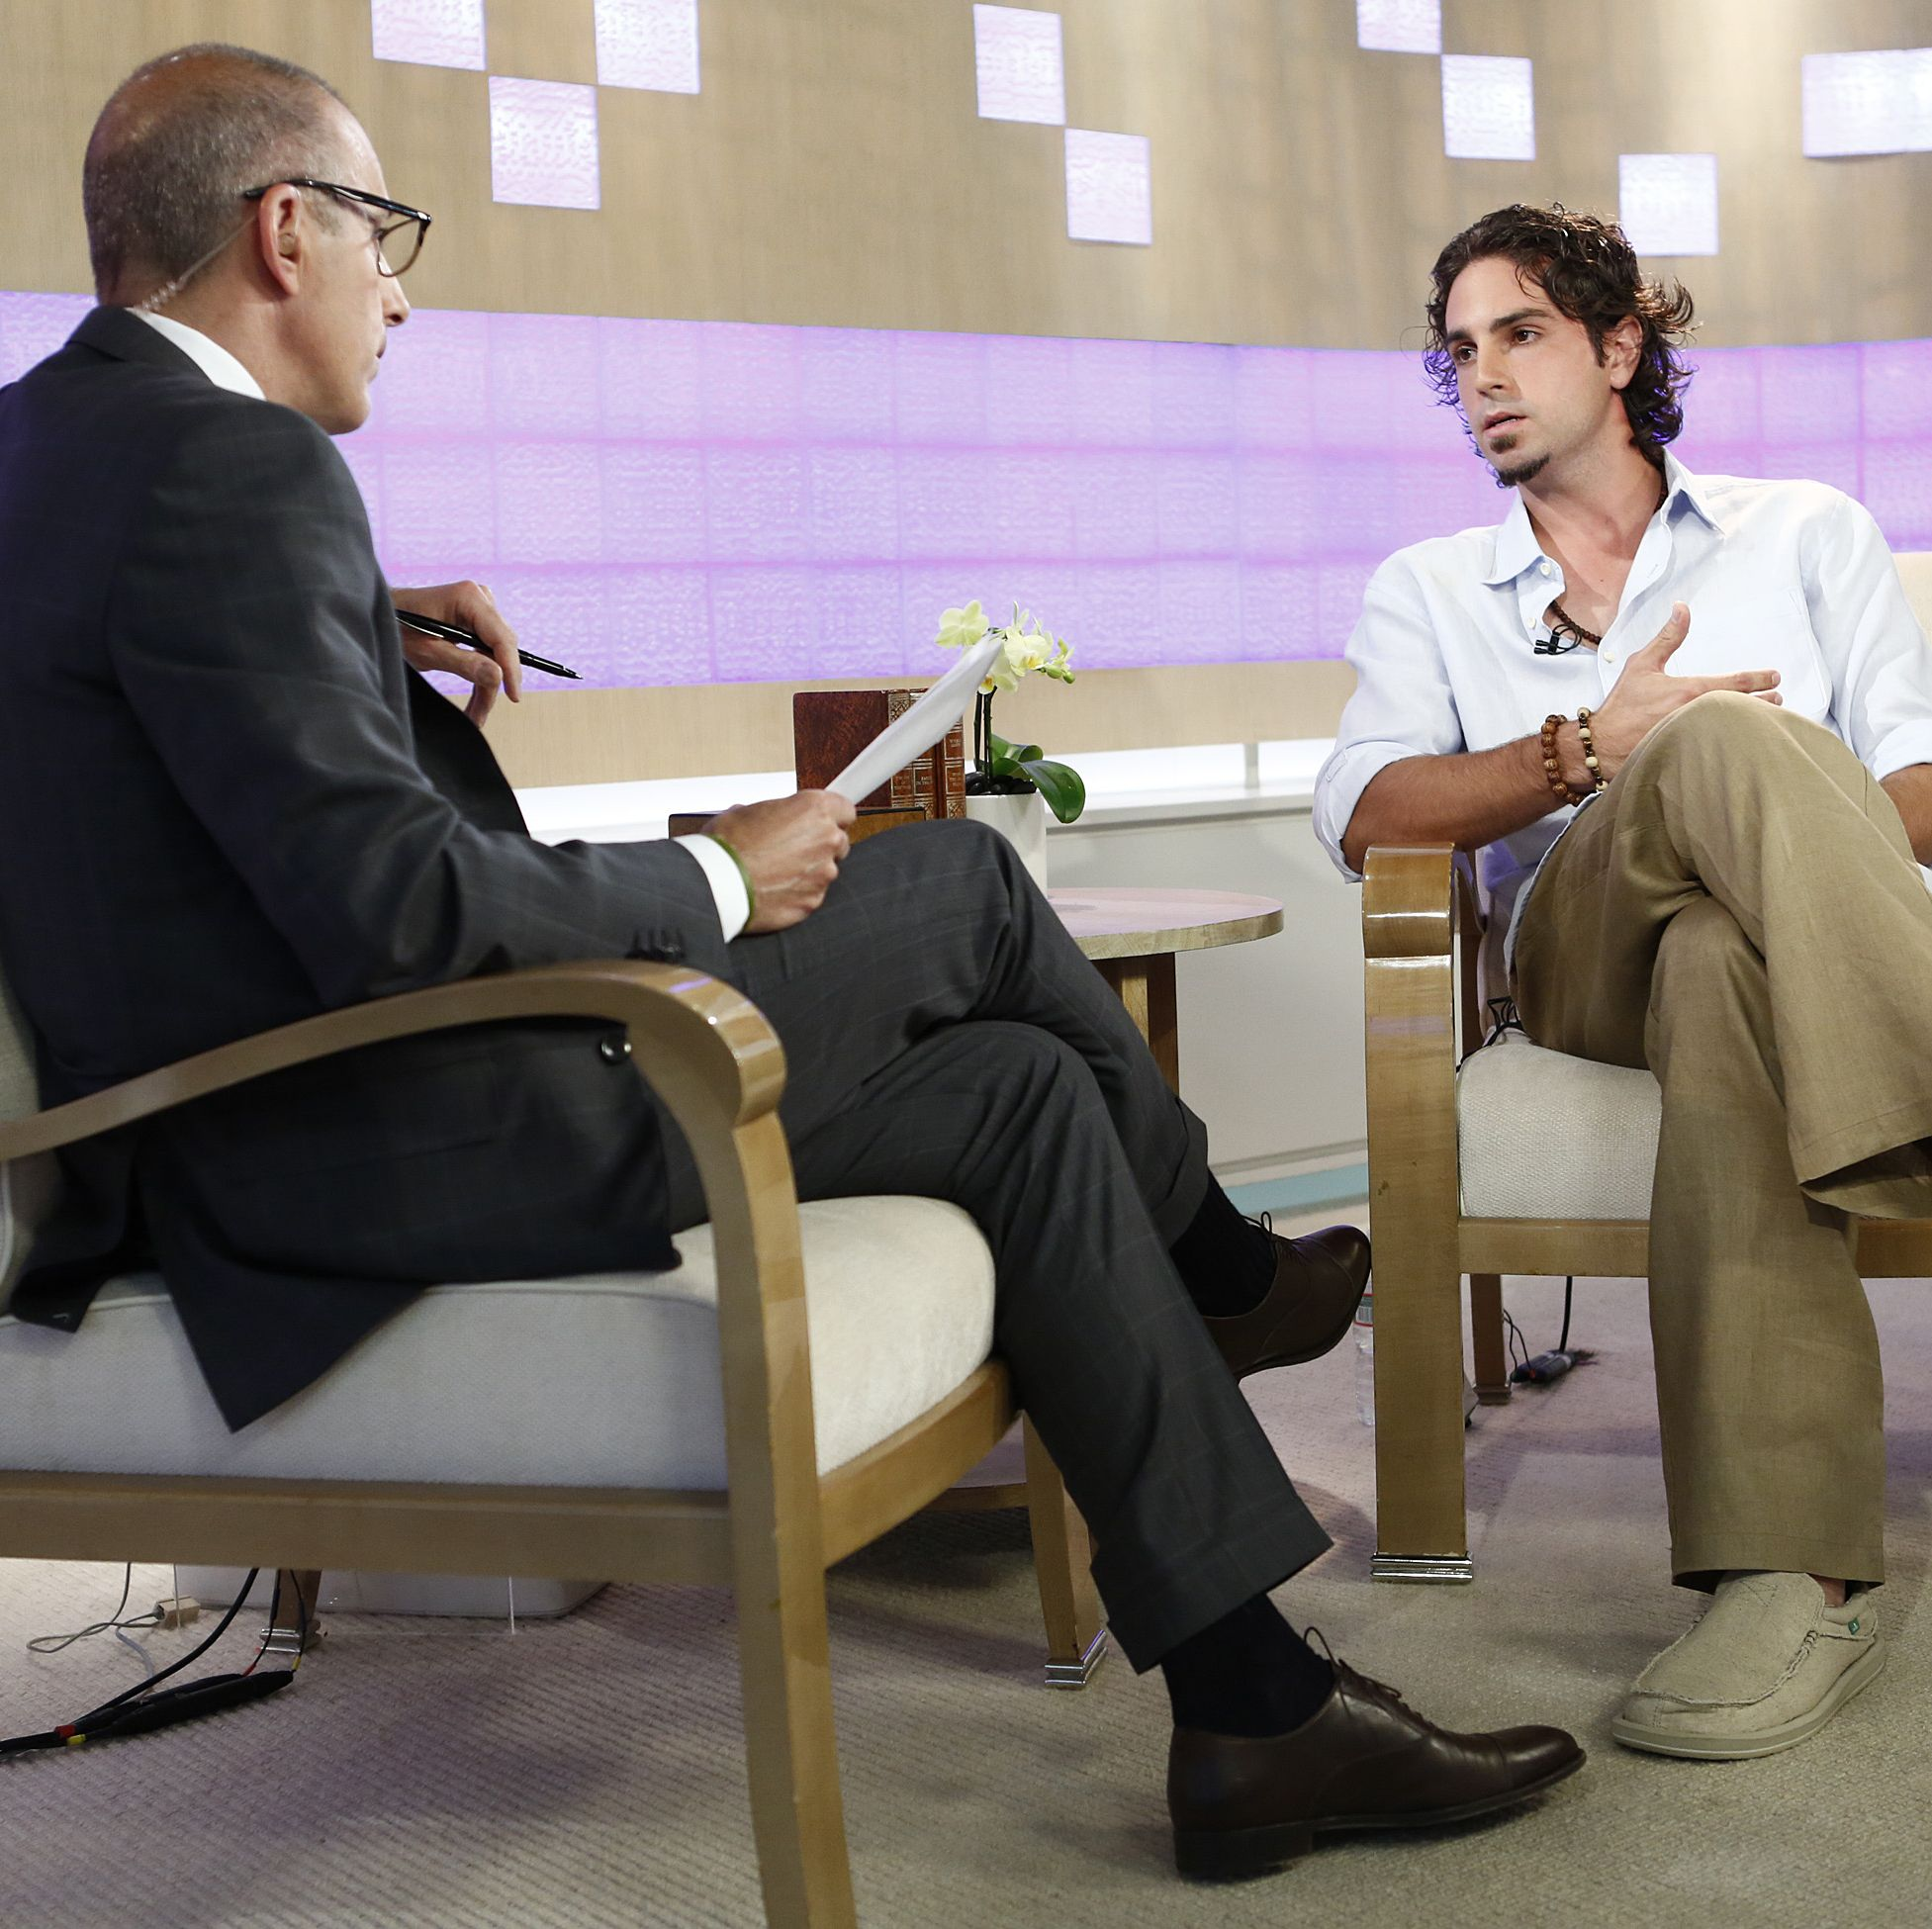 Robson tells Today host Matt Lauer about the abuse for the first time in 2013.